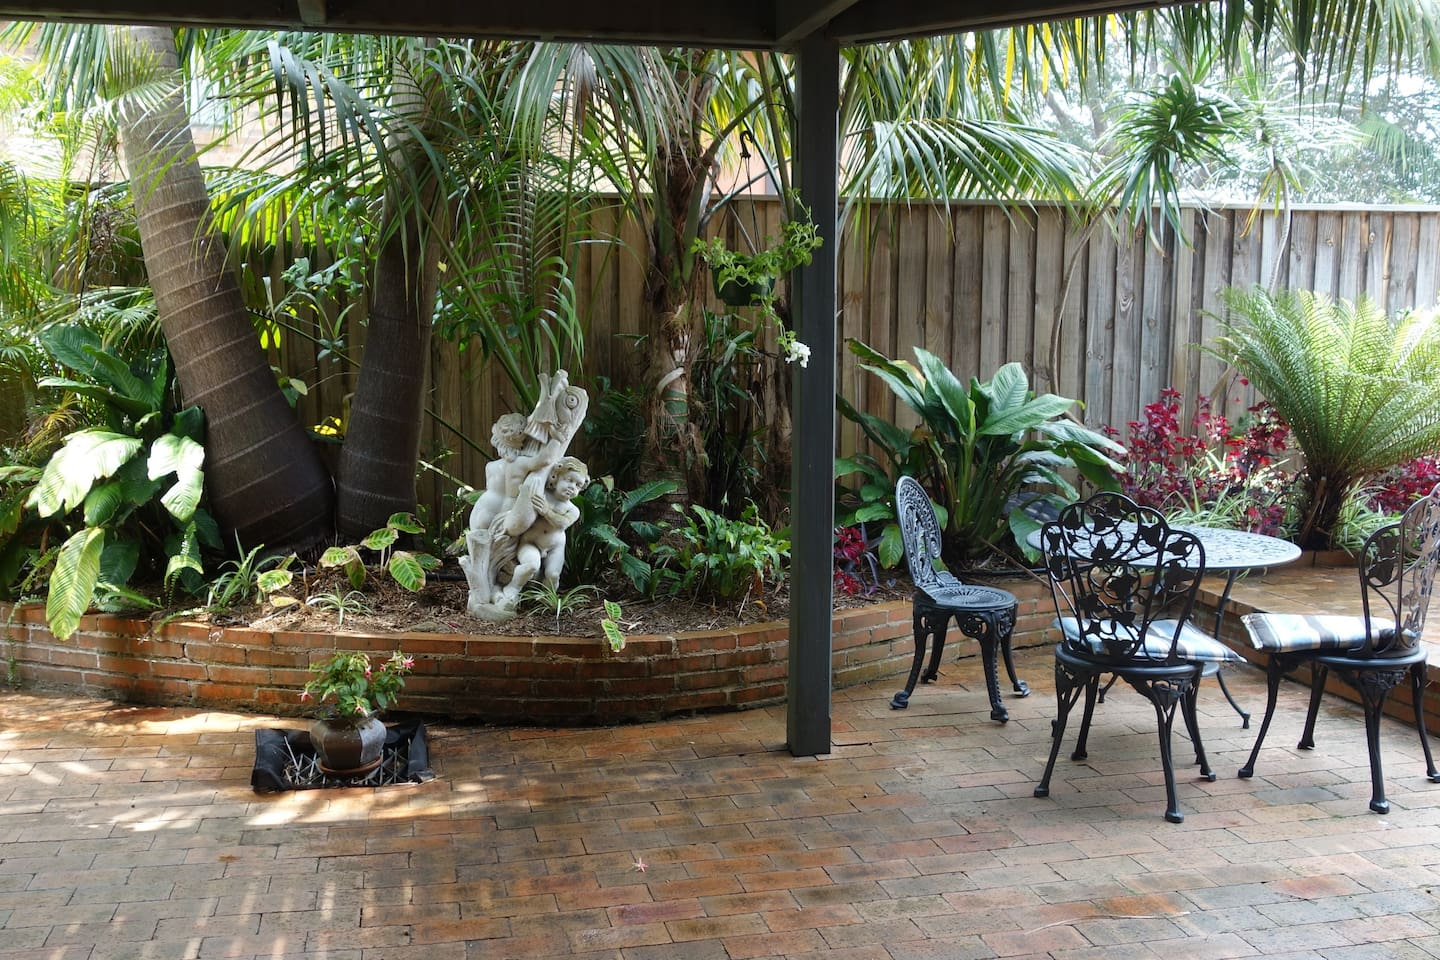 Enjoy the private patio garden of your self-contained apartment.